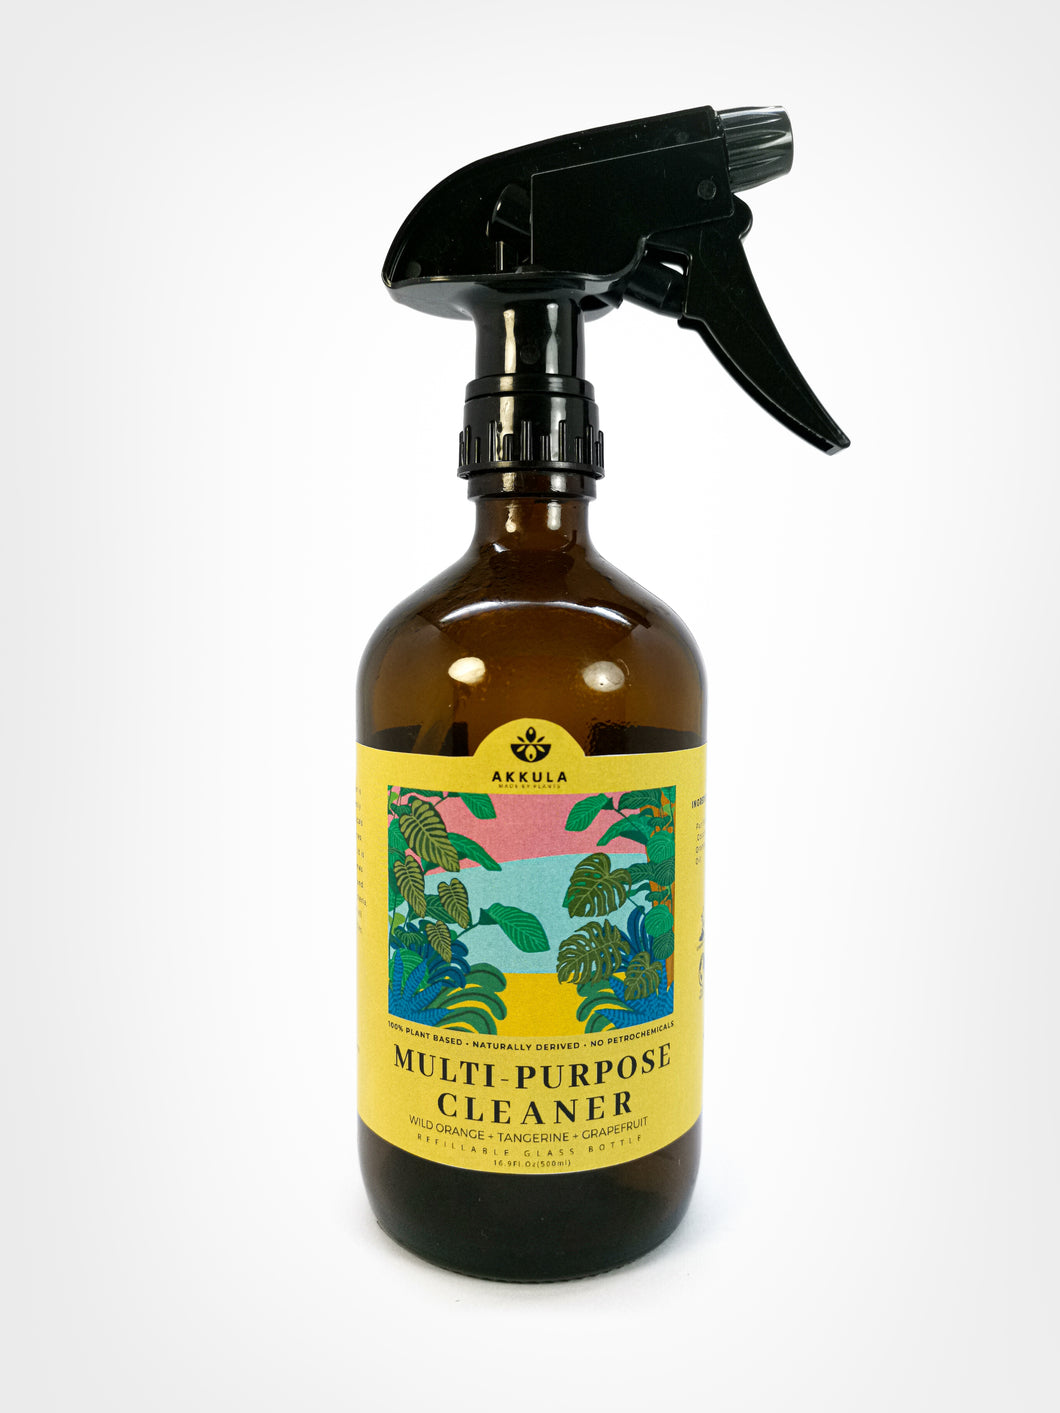 Multi Purpose Cleaner Ready Spray : Wild Orange + Tangerine + Grapefruit 500ml